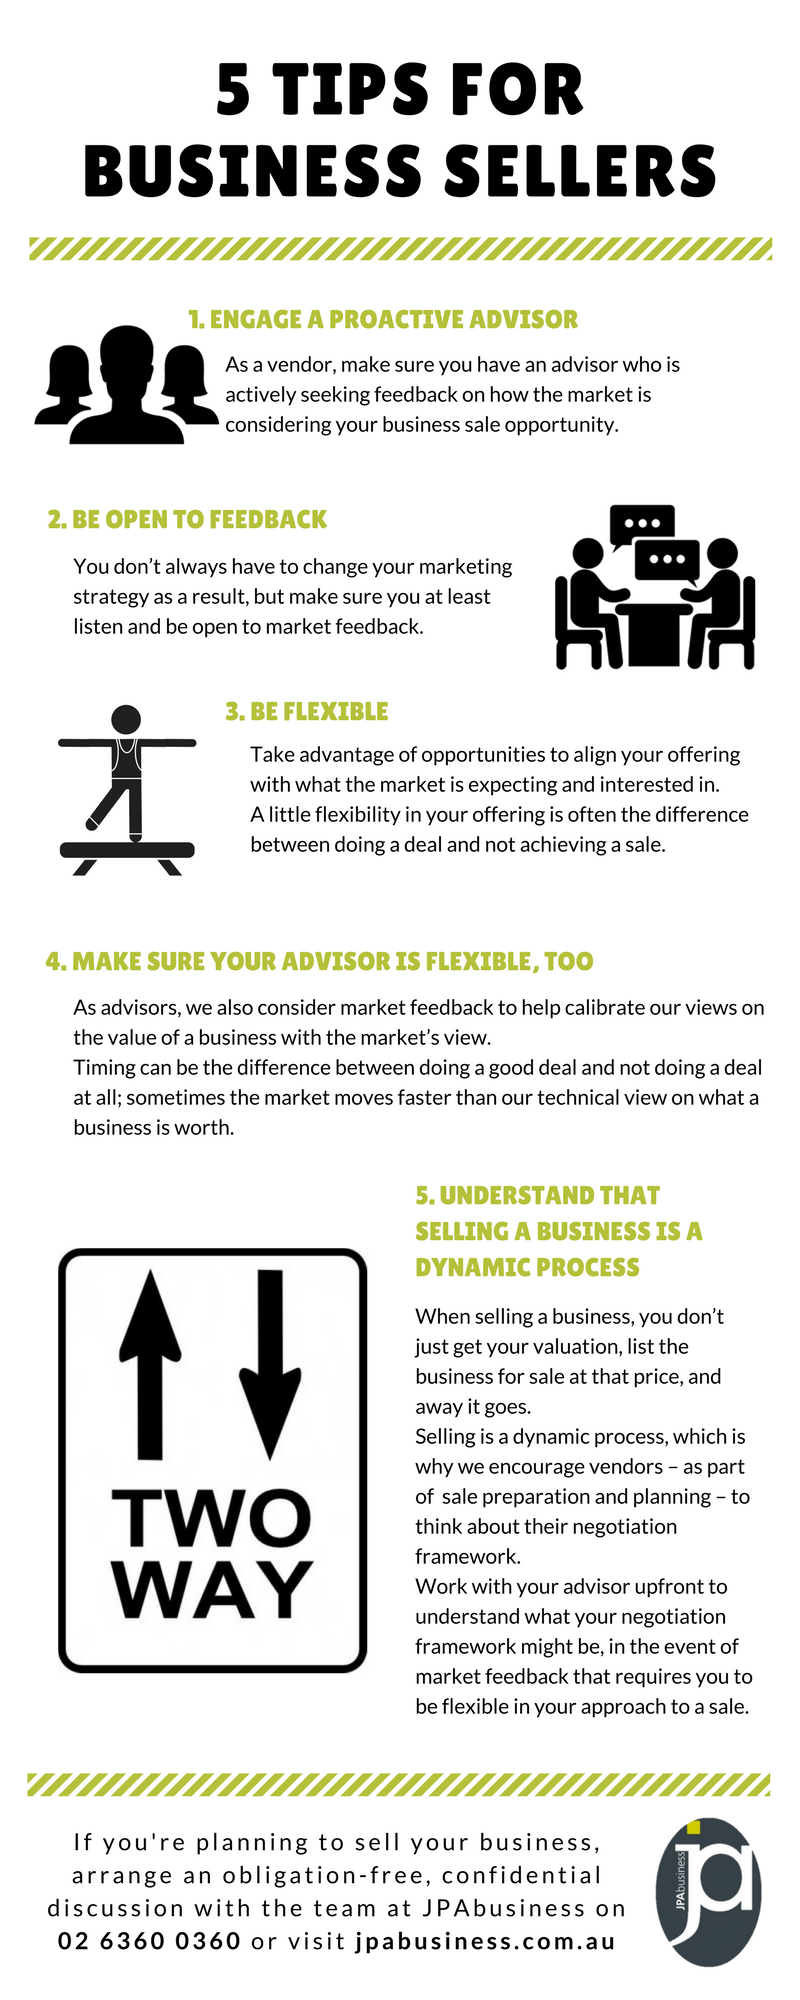 5 tips for business sellers.png